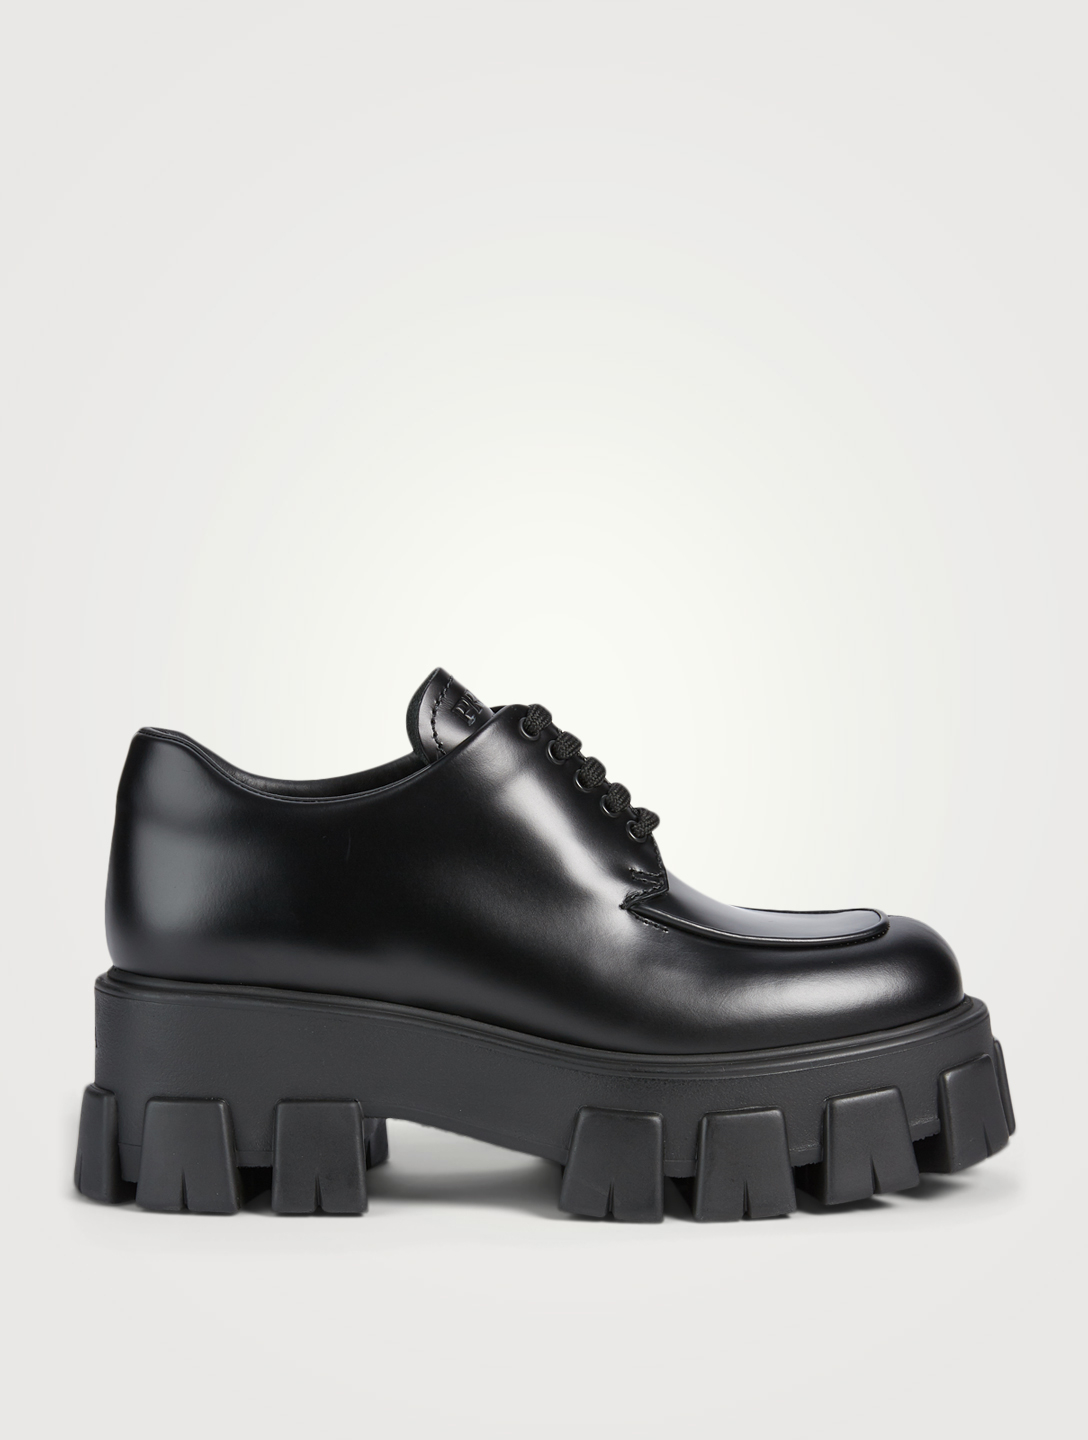 PRADA Monolith Leather Lace-Up Shoes Women's Black